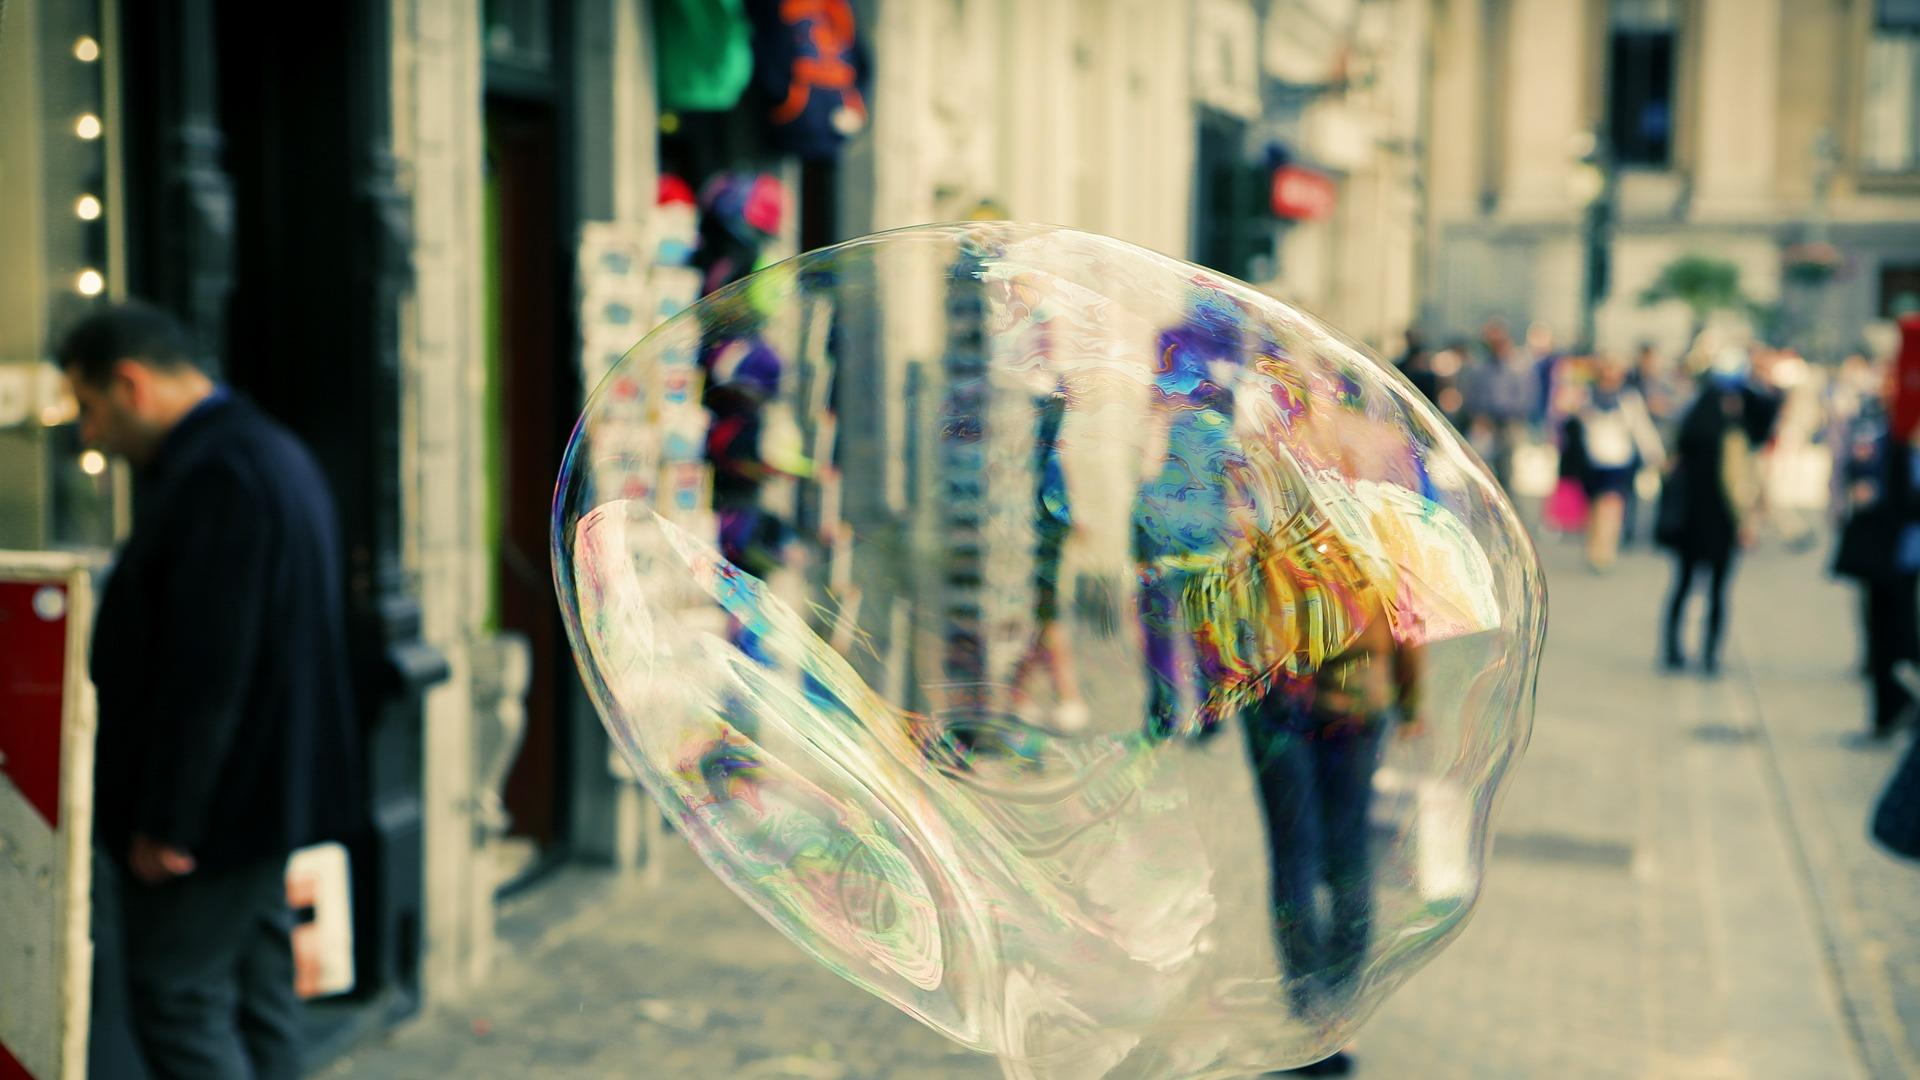 Soap Bubble 406944 1920